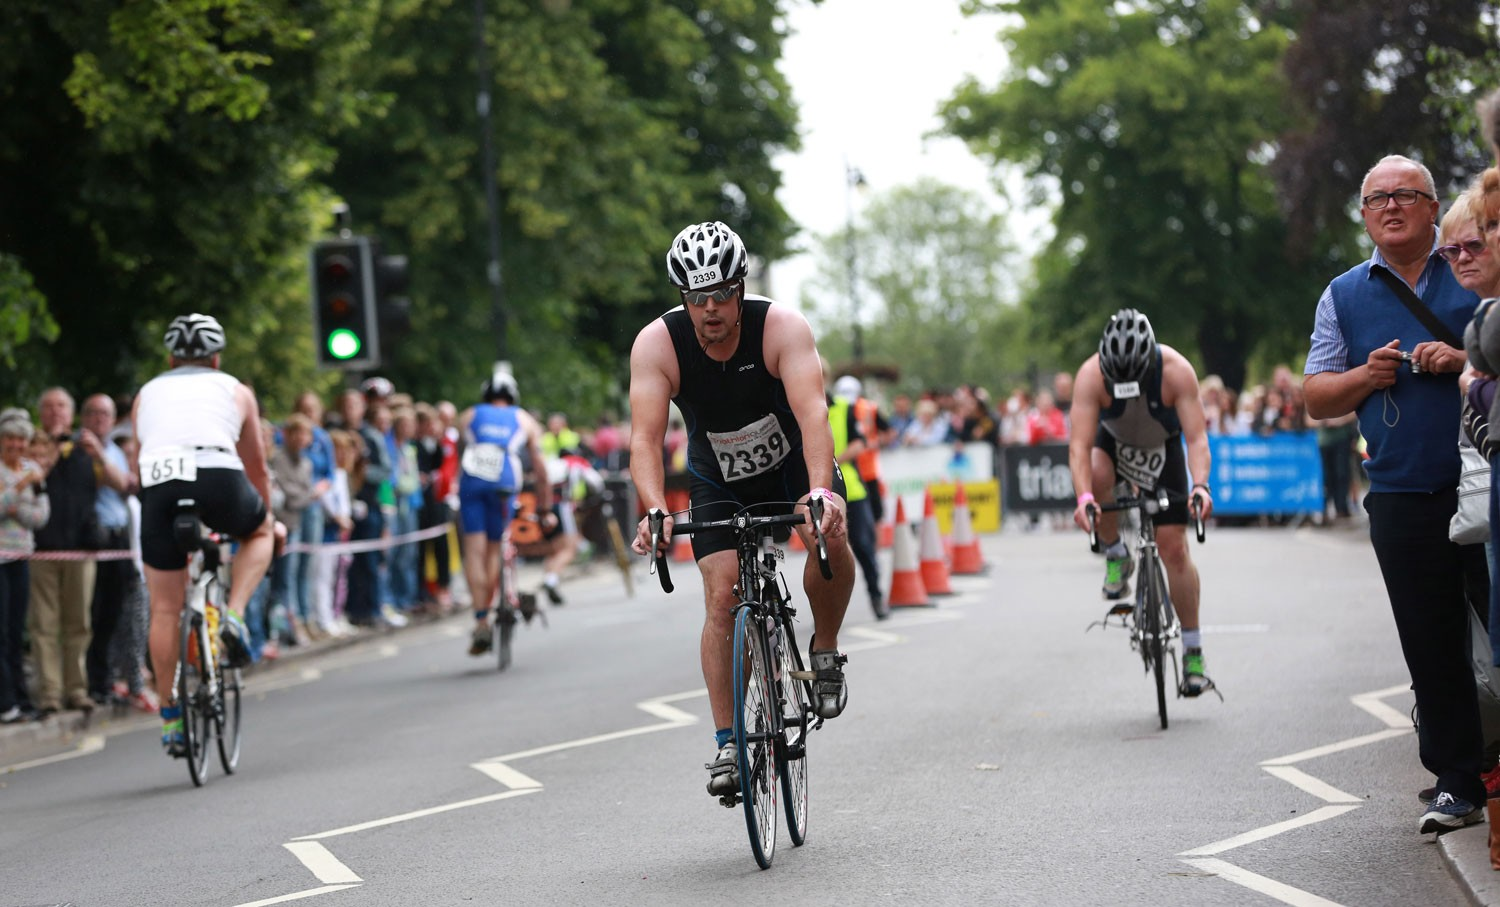 Royal Windsor Triathlon - cover image